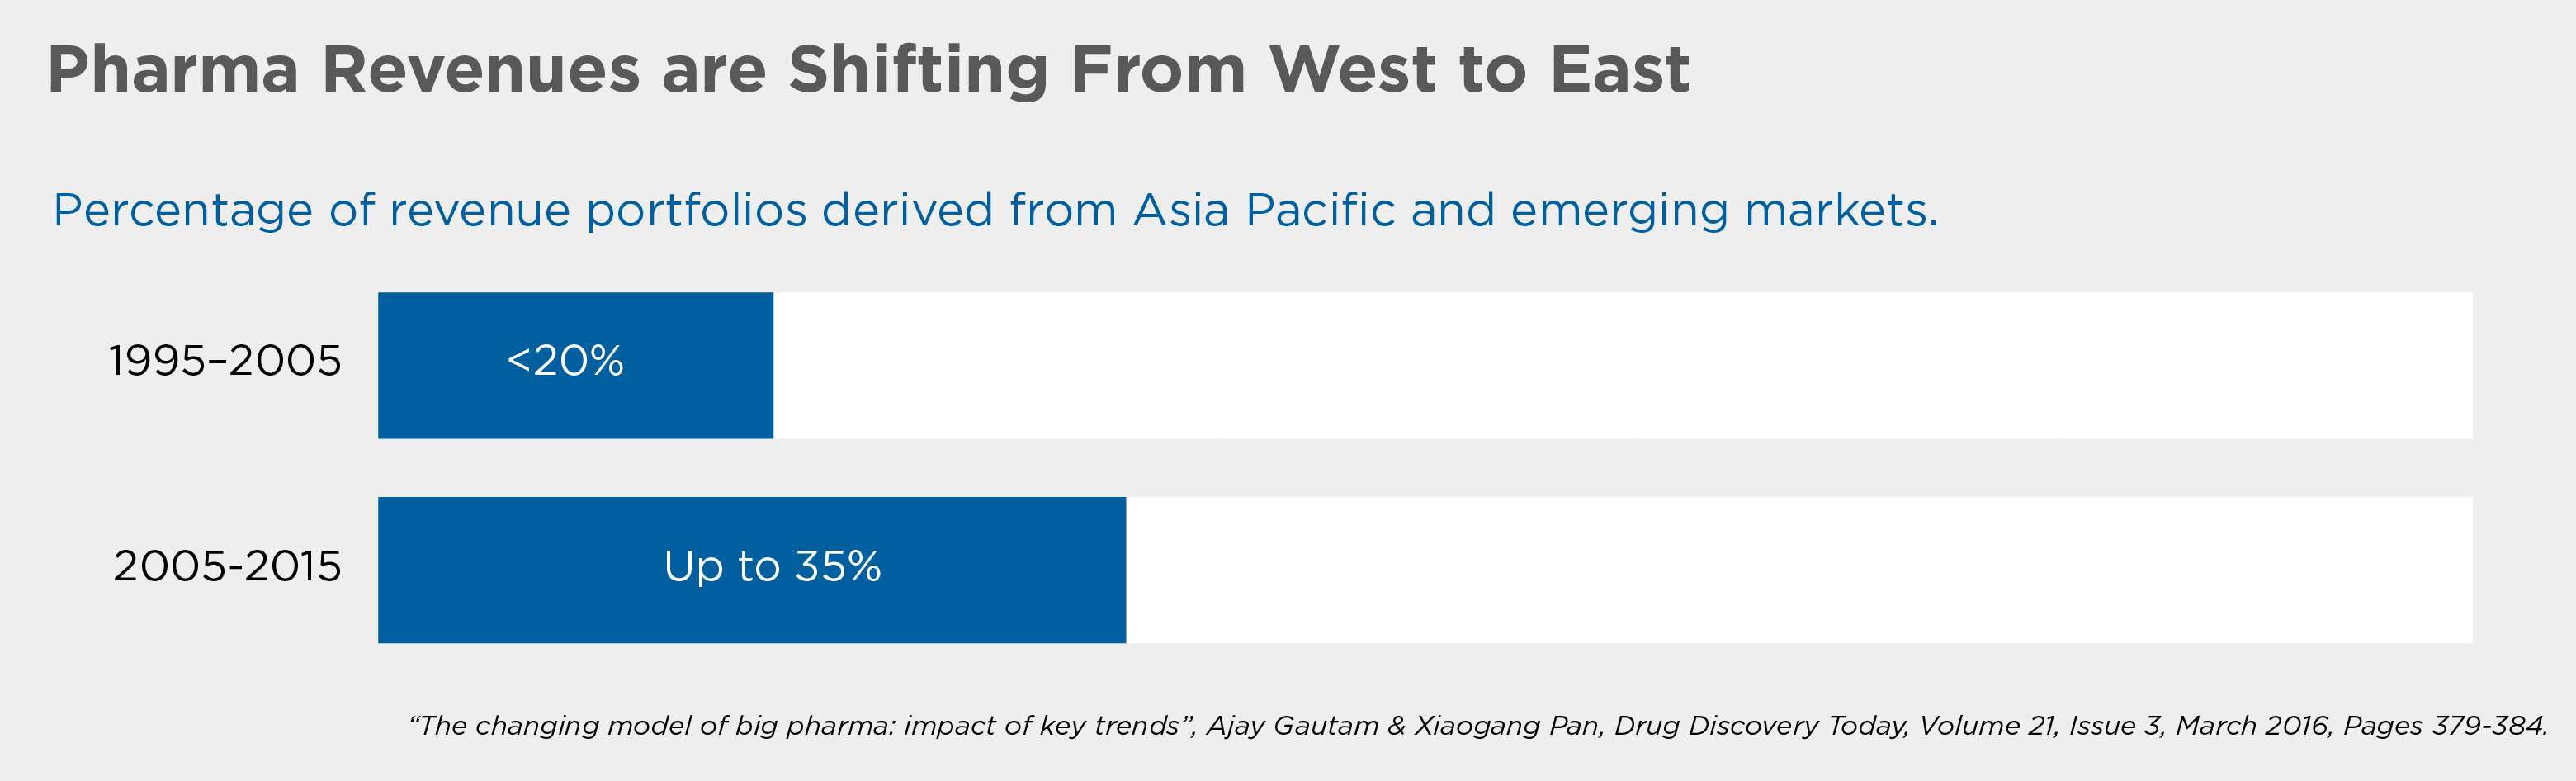 Pharma Revenues are Shifting from West to East